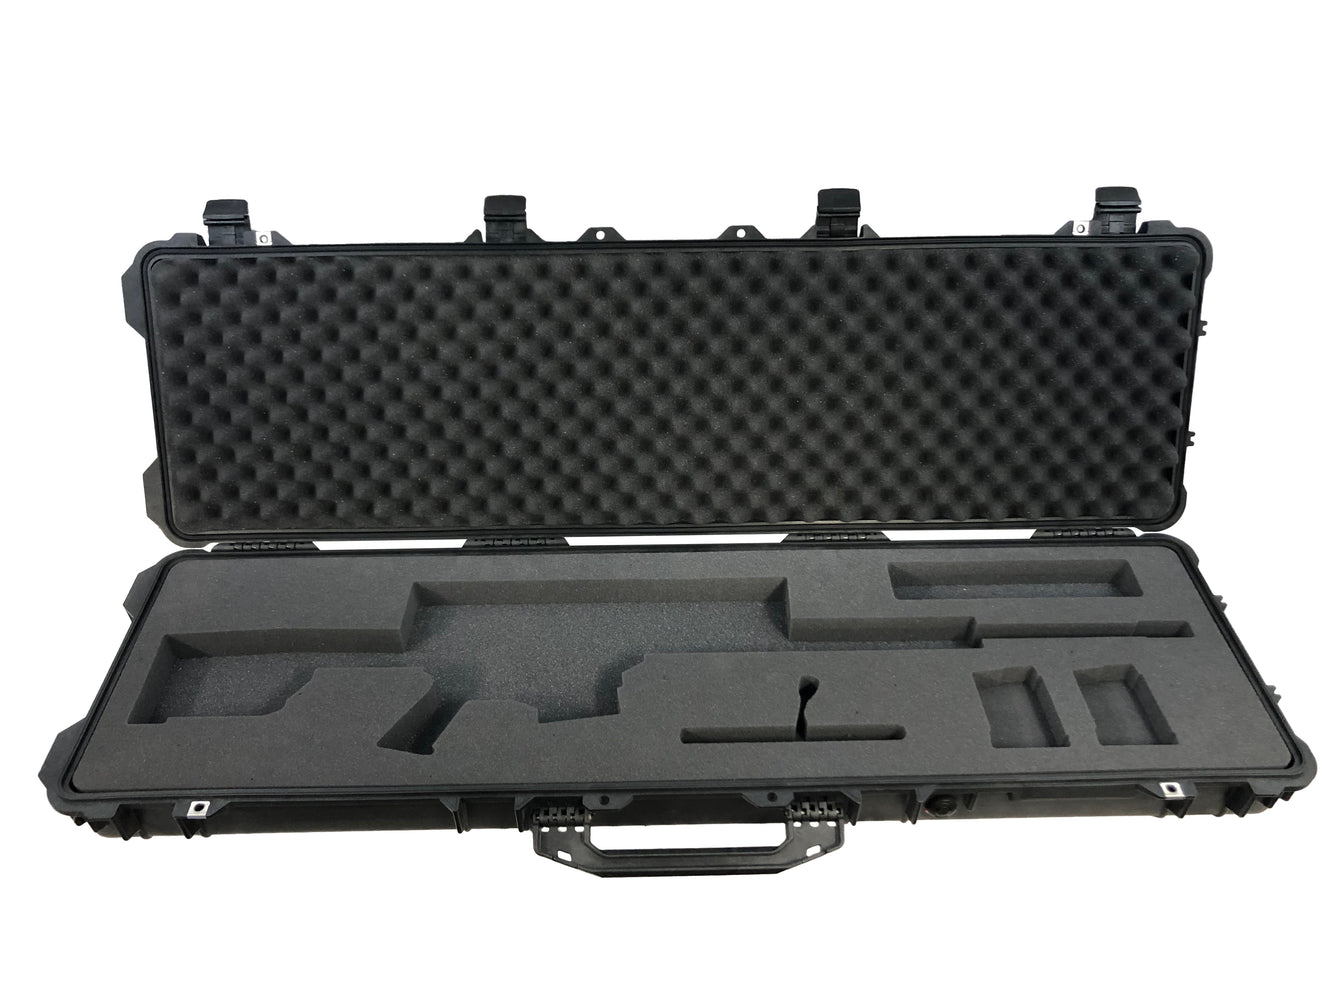 Plano Case 108191 Foam Insert for Ruger Precision Rifle Extended with Scope (Foam ONLY)